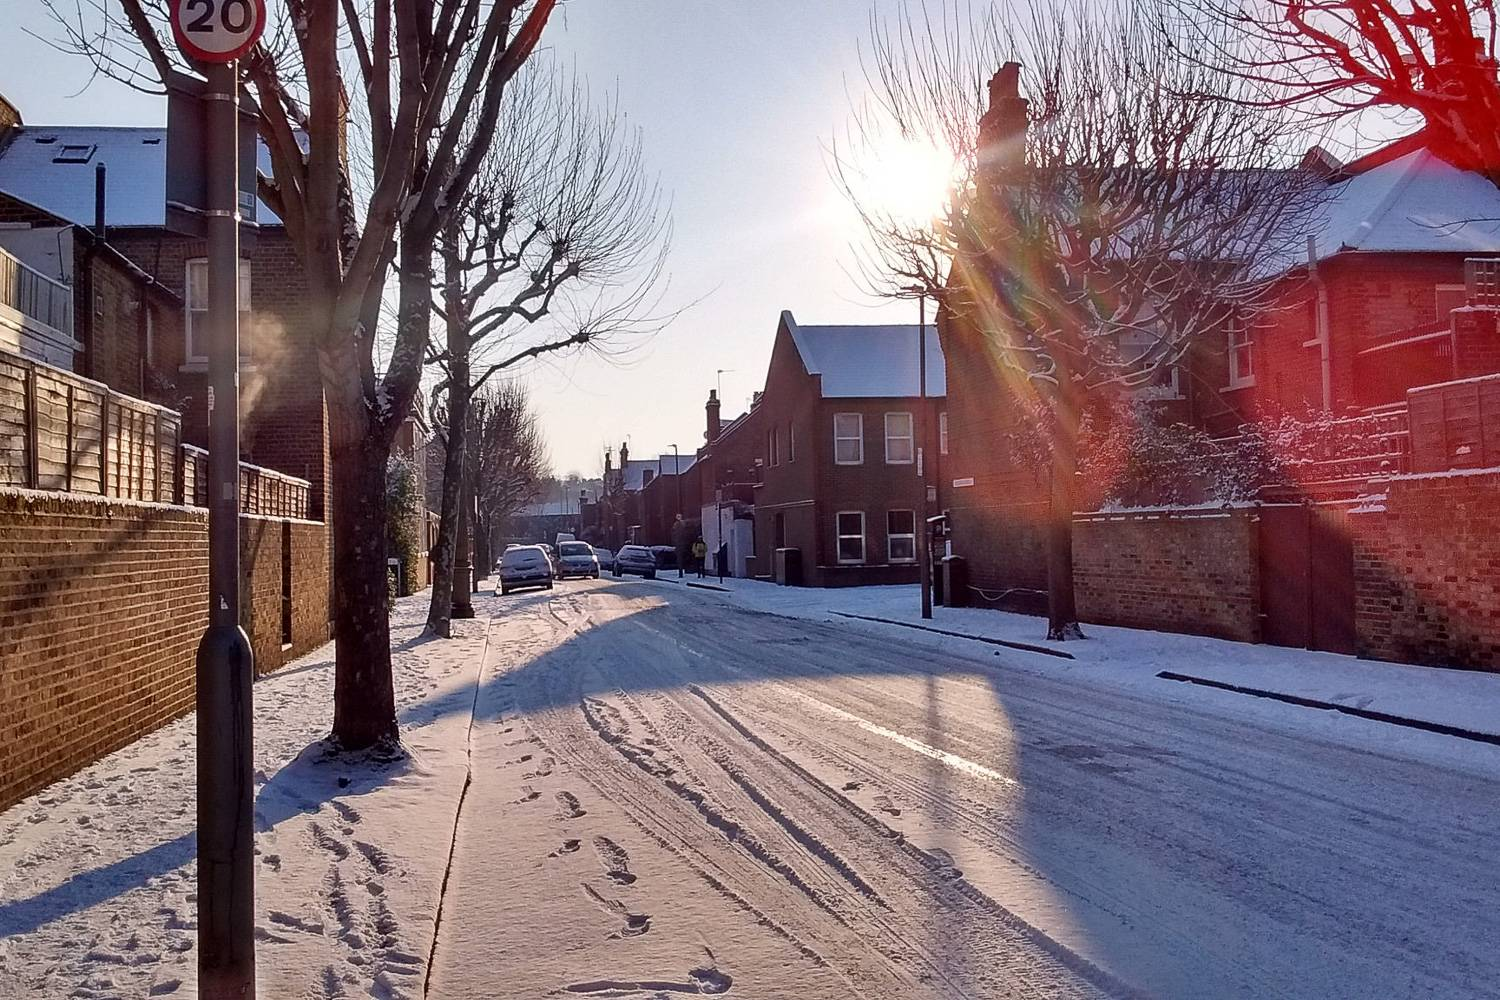 Image of a London residential street in Clapham after a snowfall.